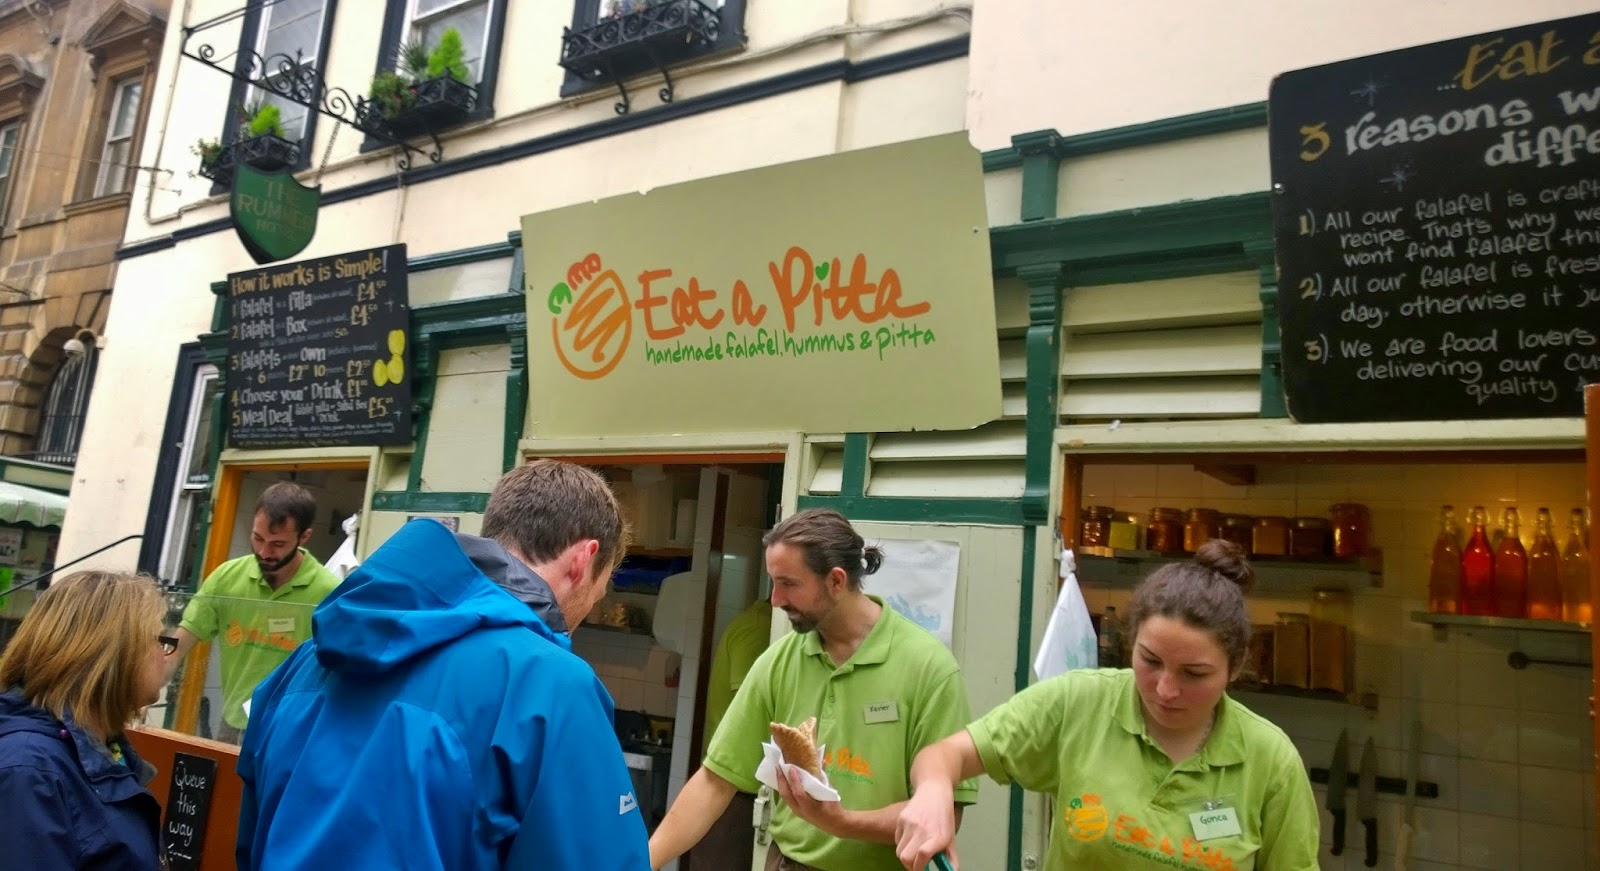 Eat a Pitta Bristol